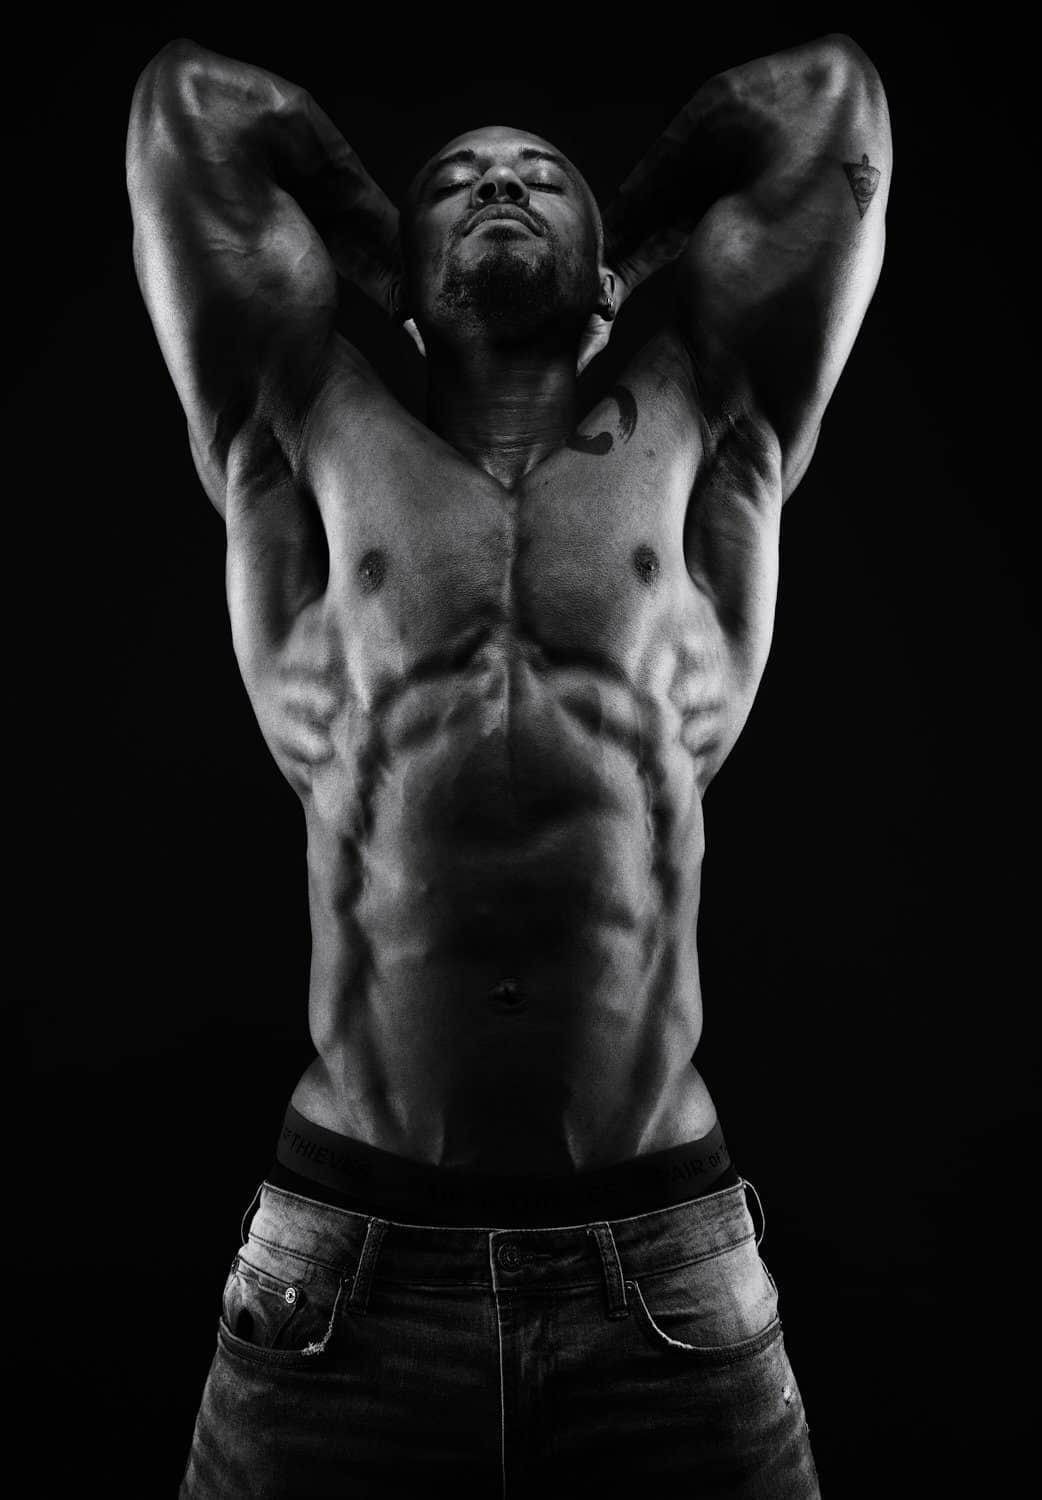 bodyscape photography, bodyscape, abs, tattoos, GQ